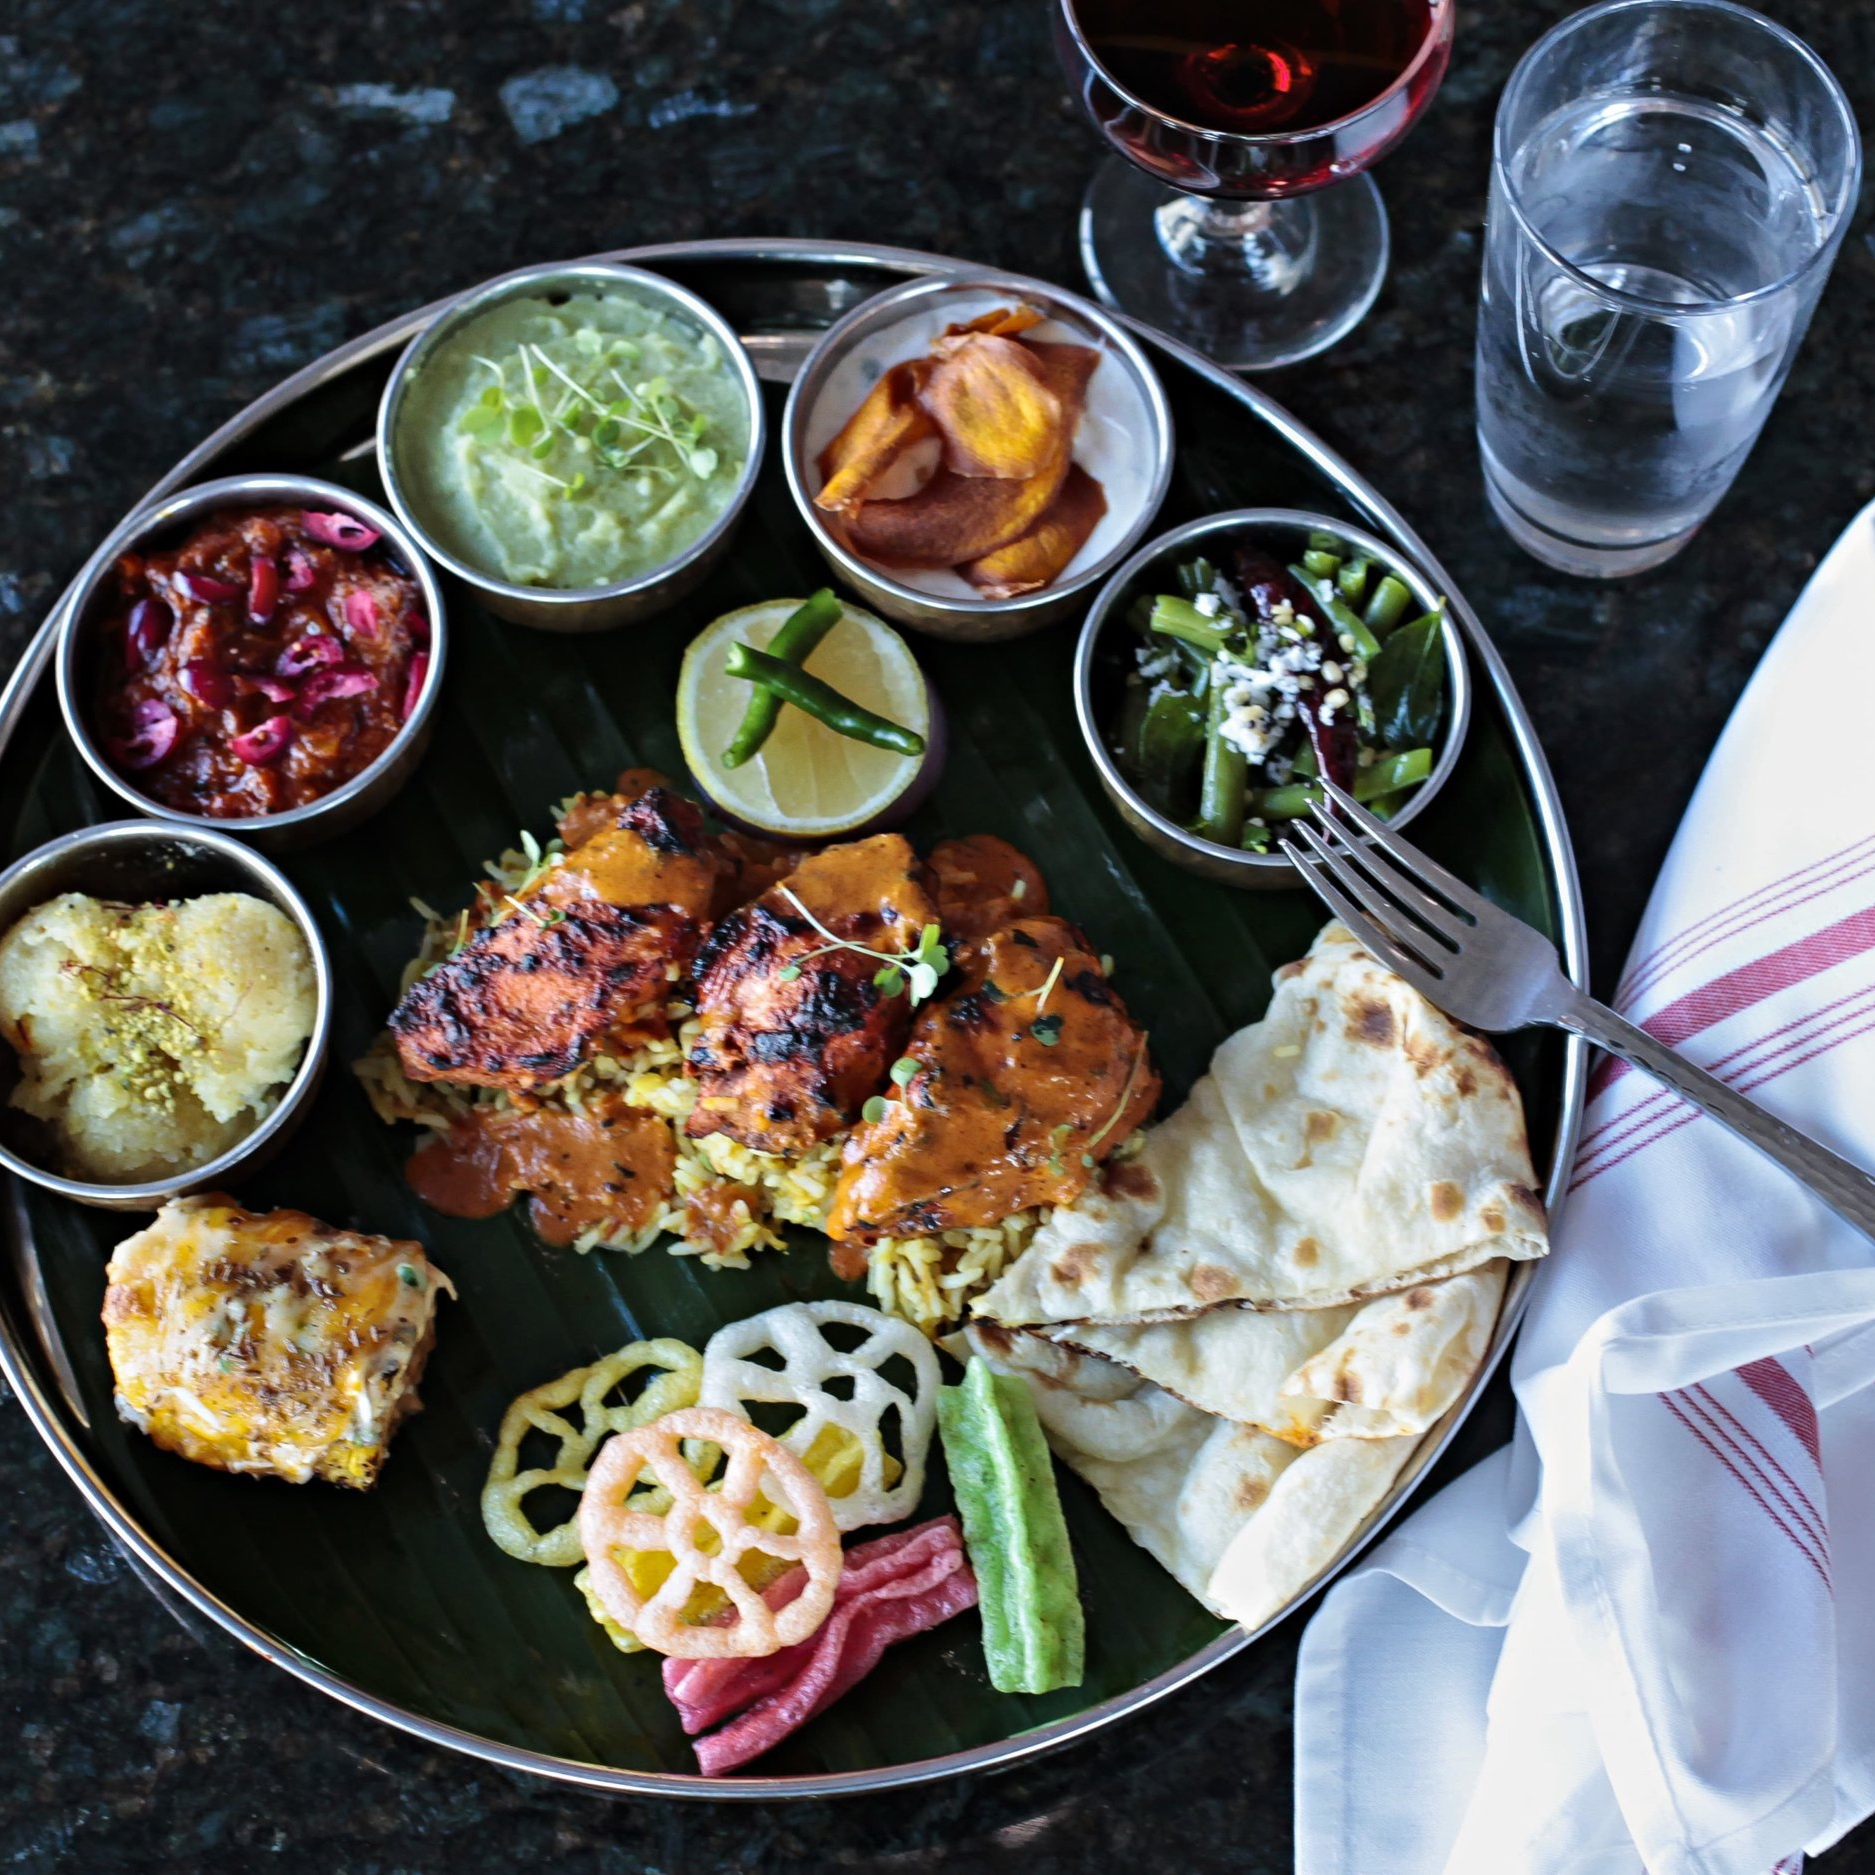 - Indian Cuisine with Southern Flare